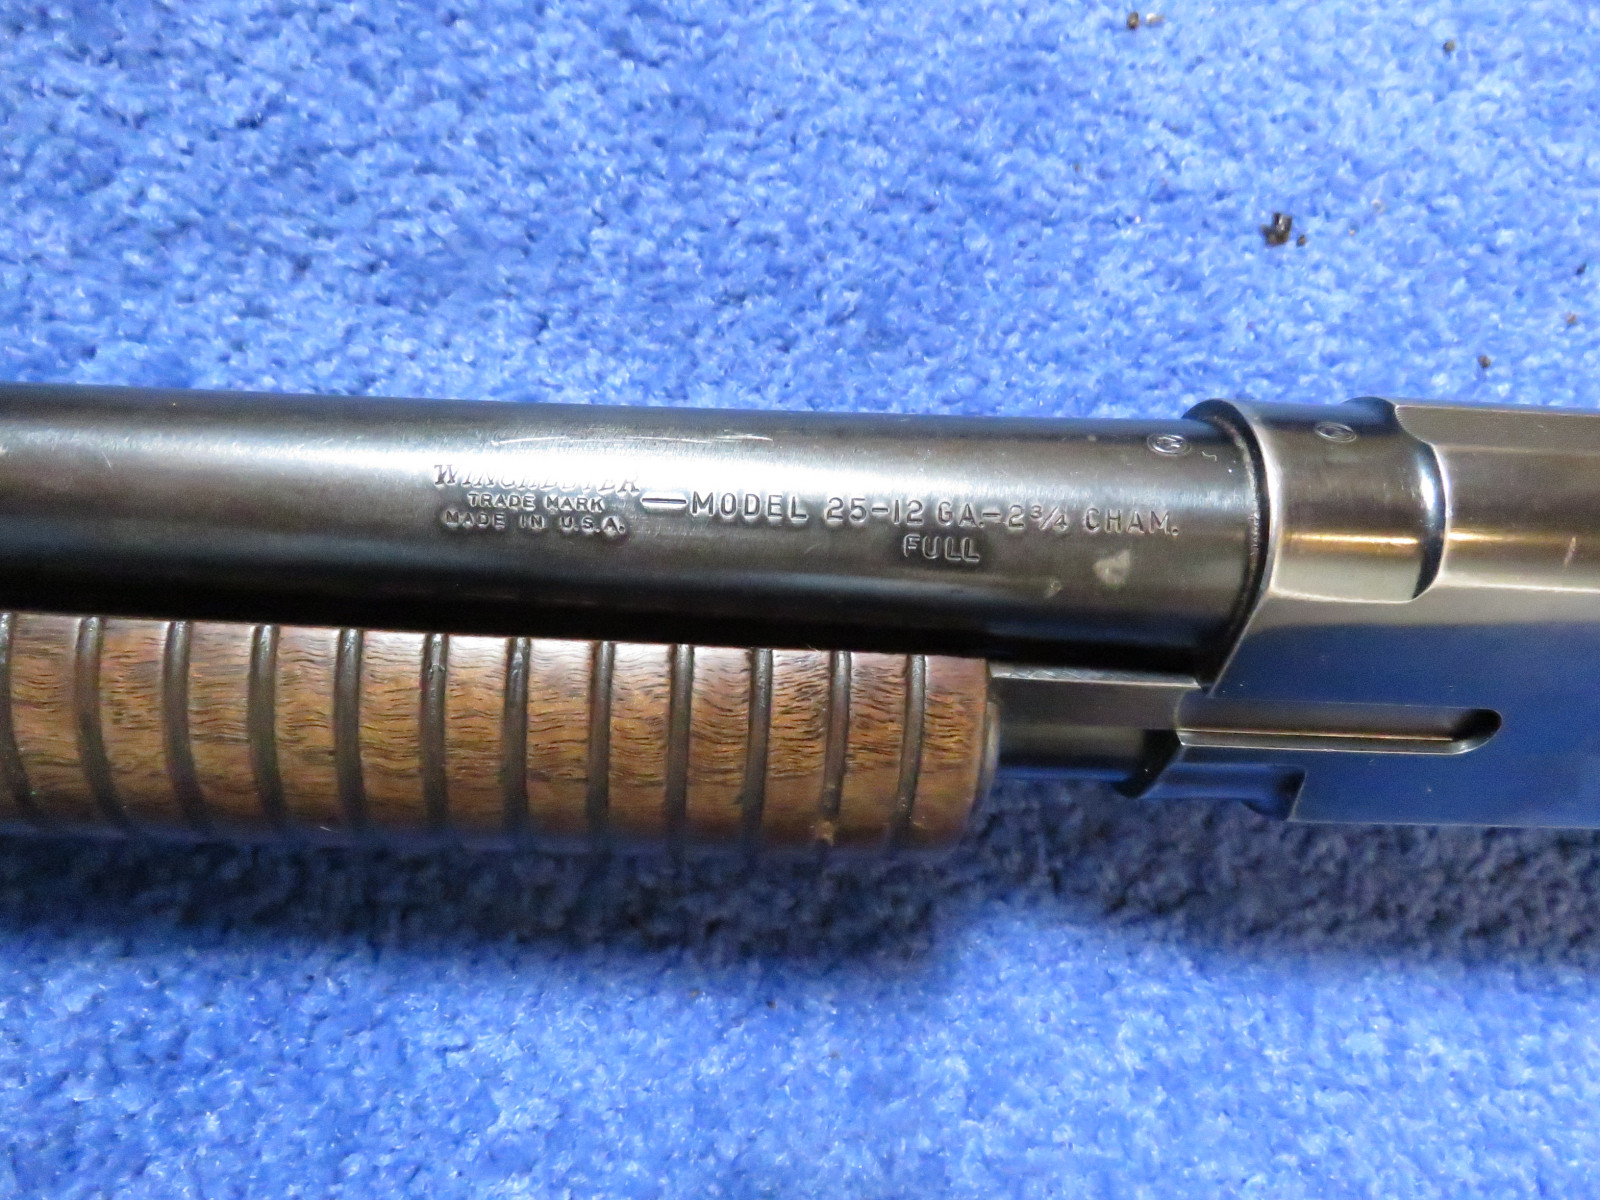 Winchester Model 25 12 Gauge Shotgun - Image 3